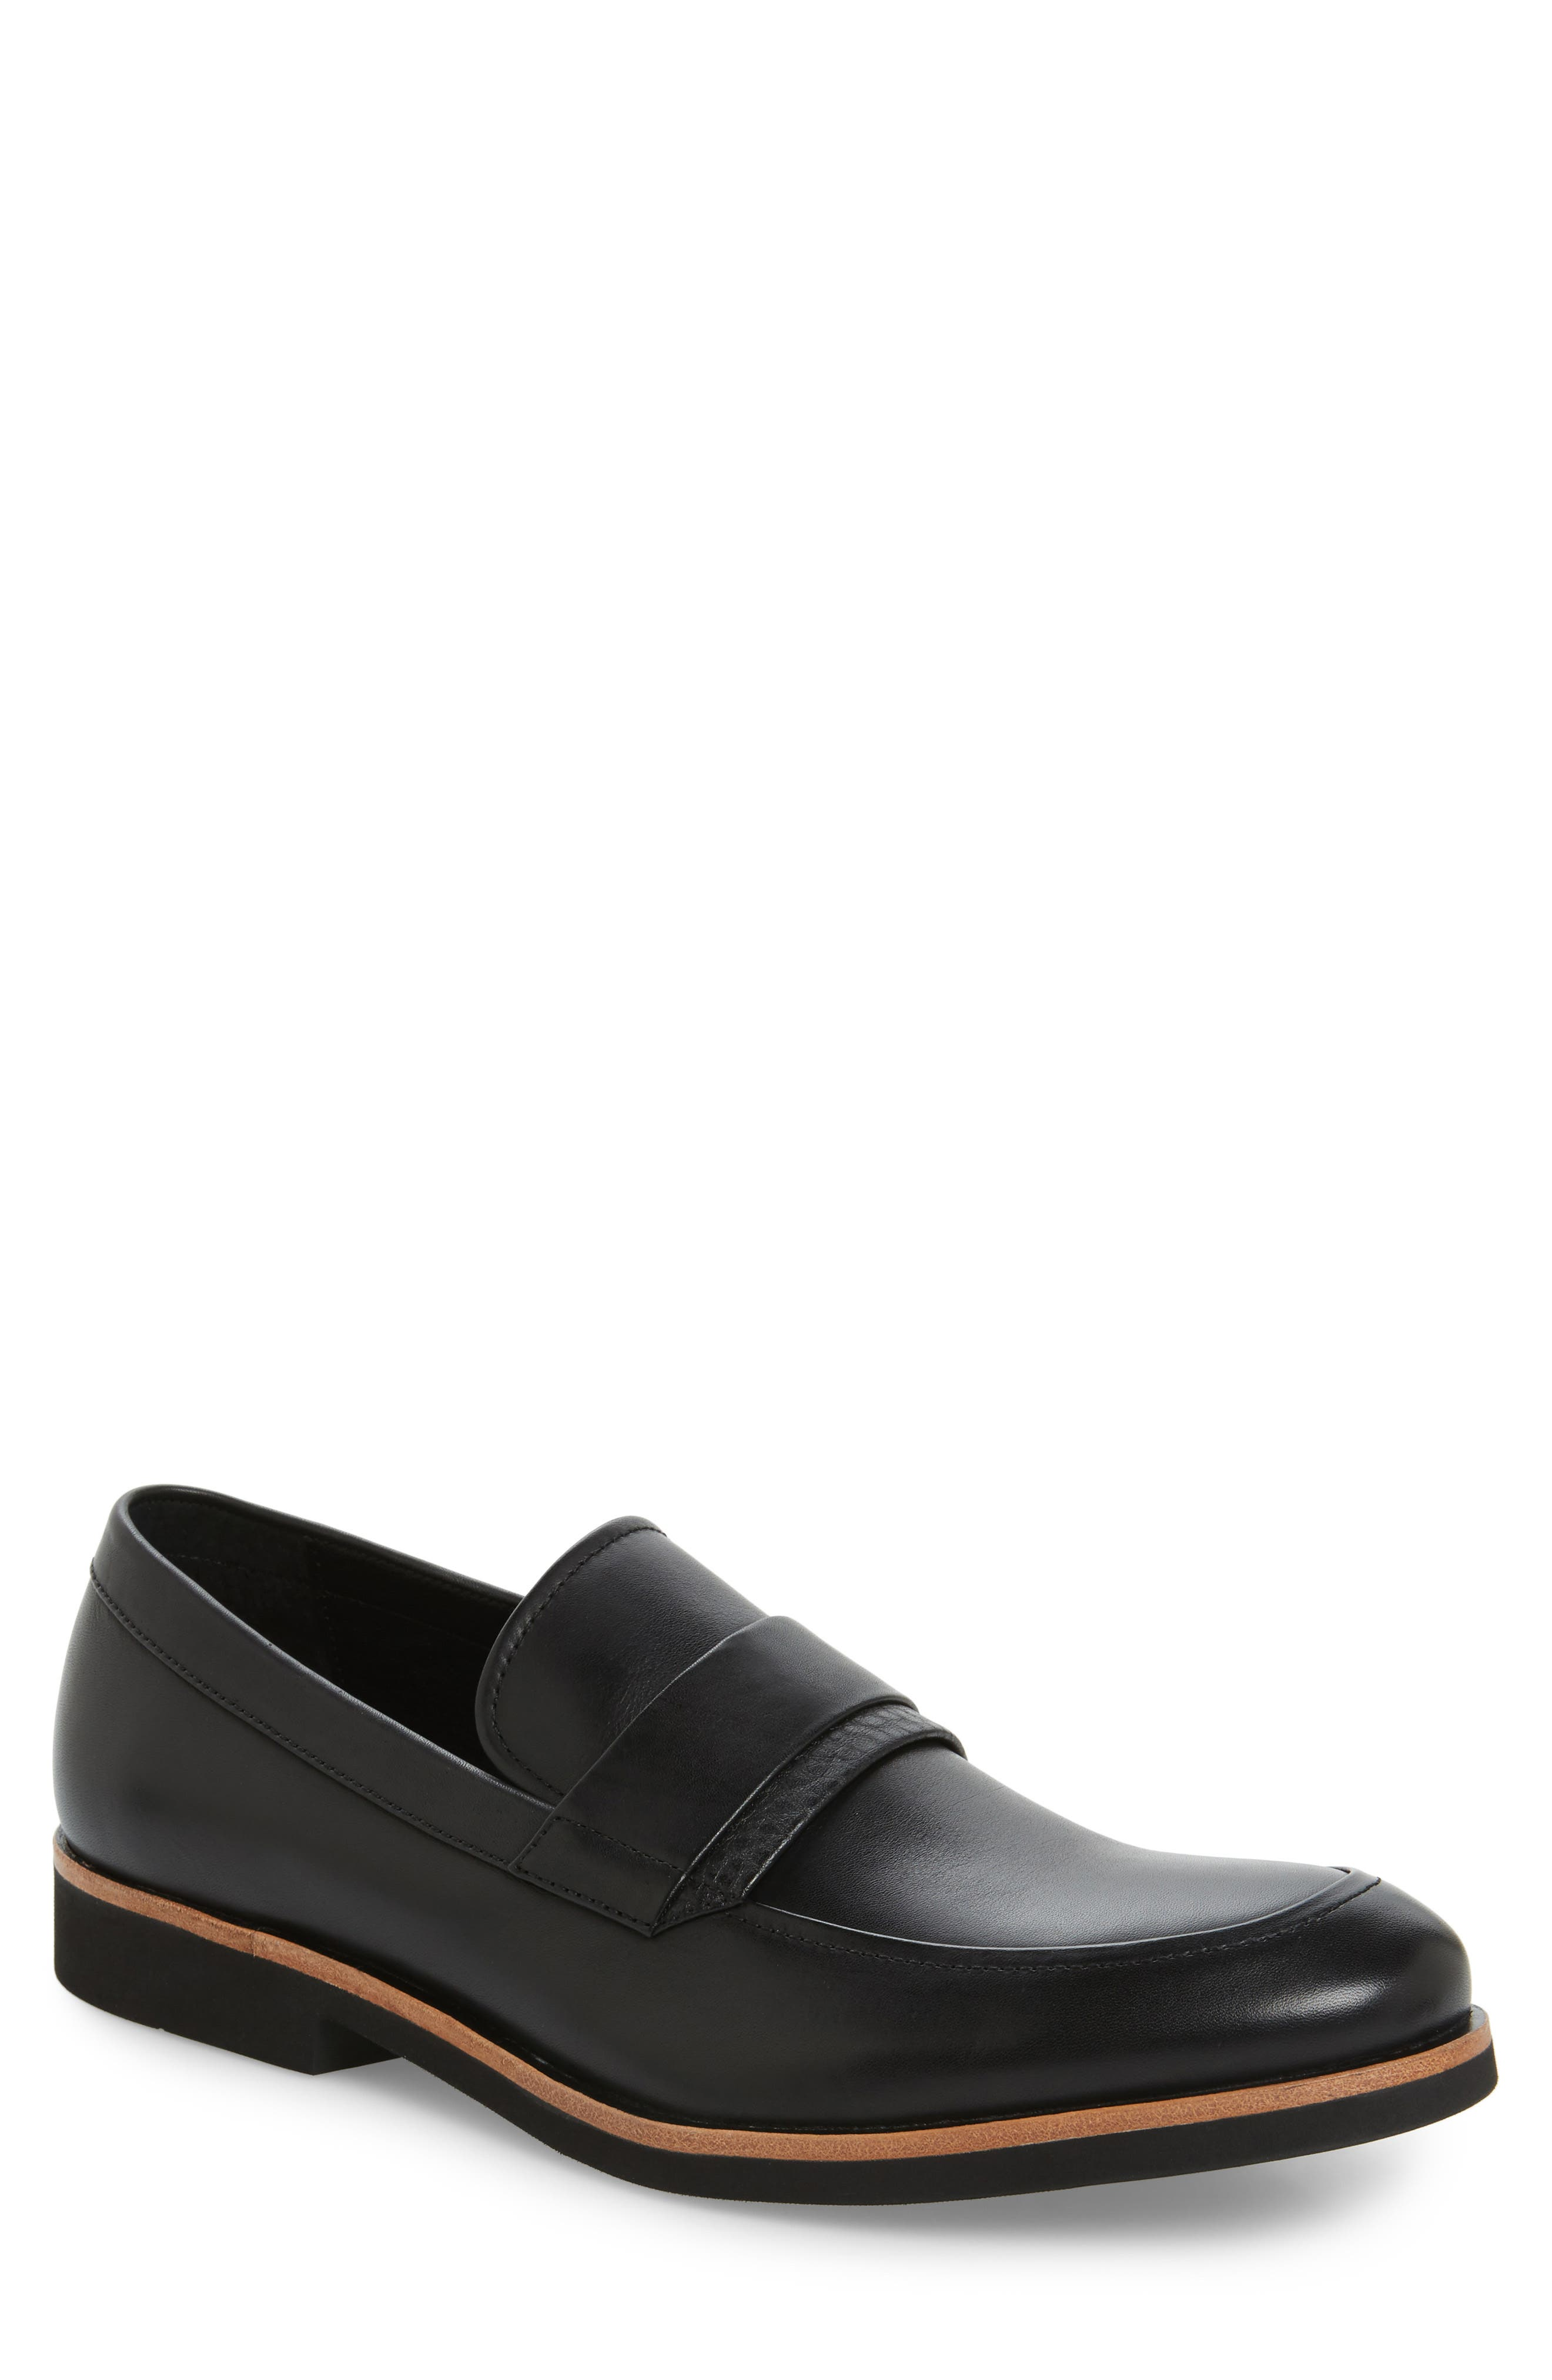 Forbes Loafer,                             Main thumbnail 1, color,                             001